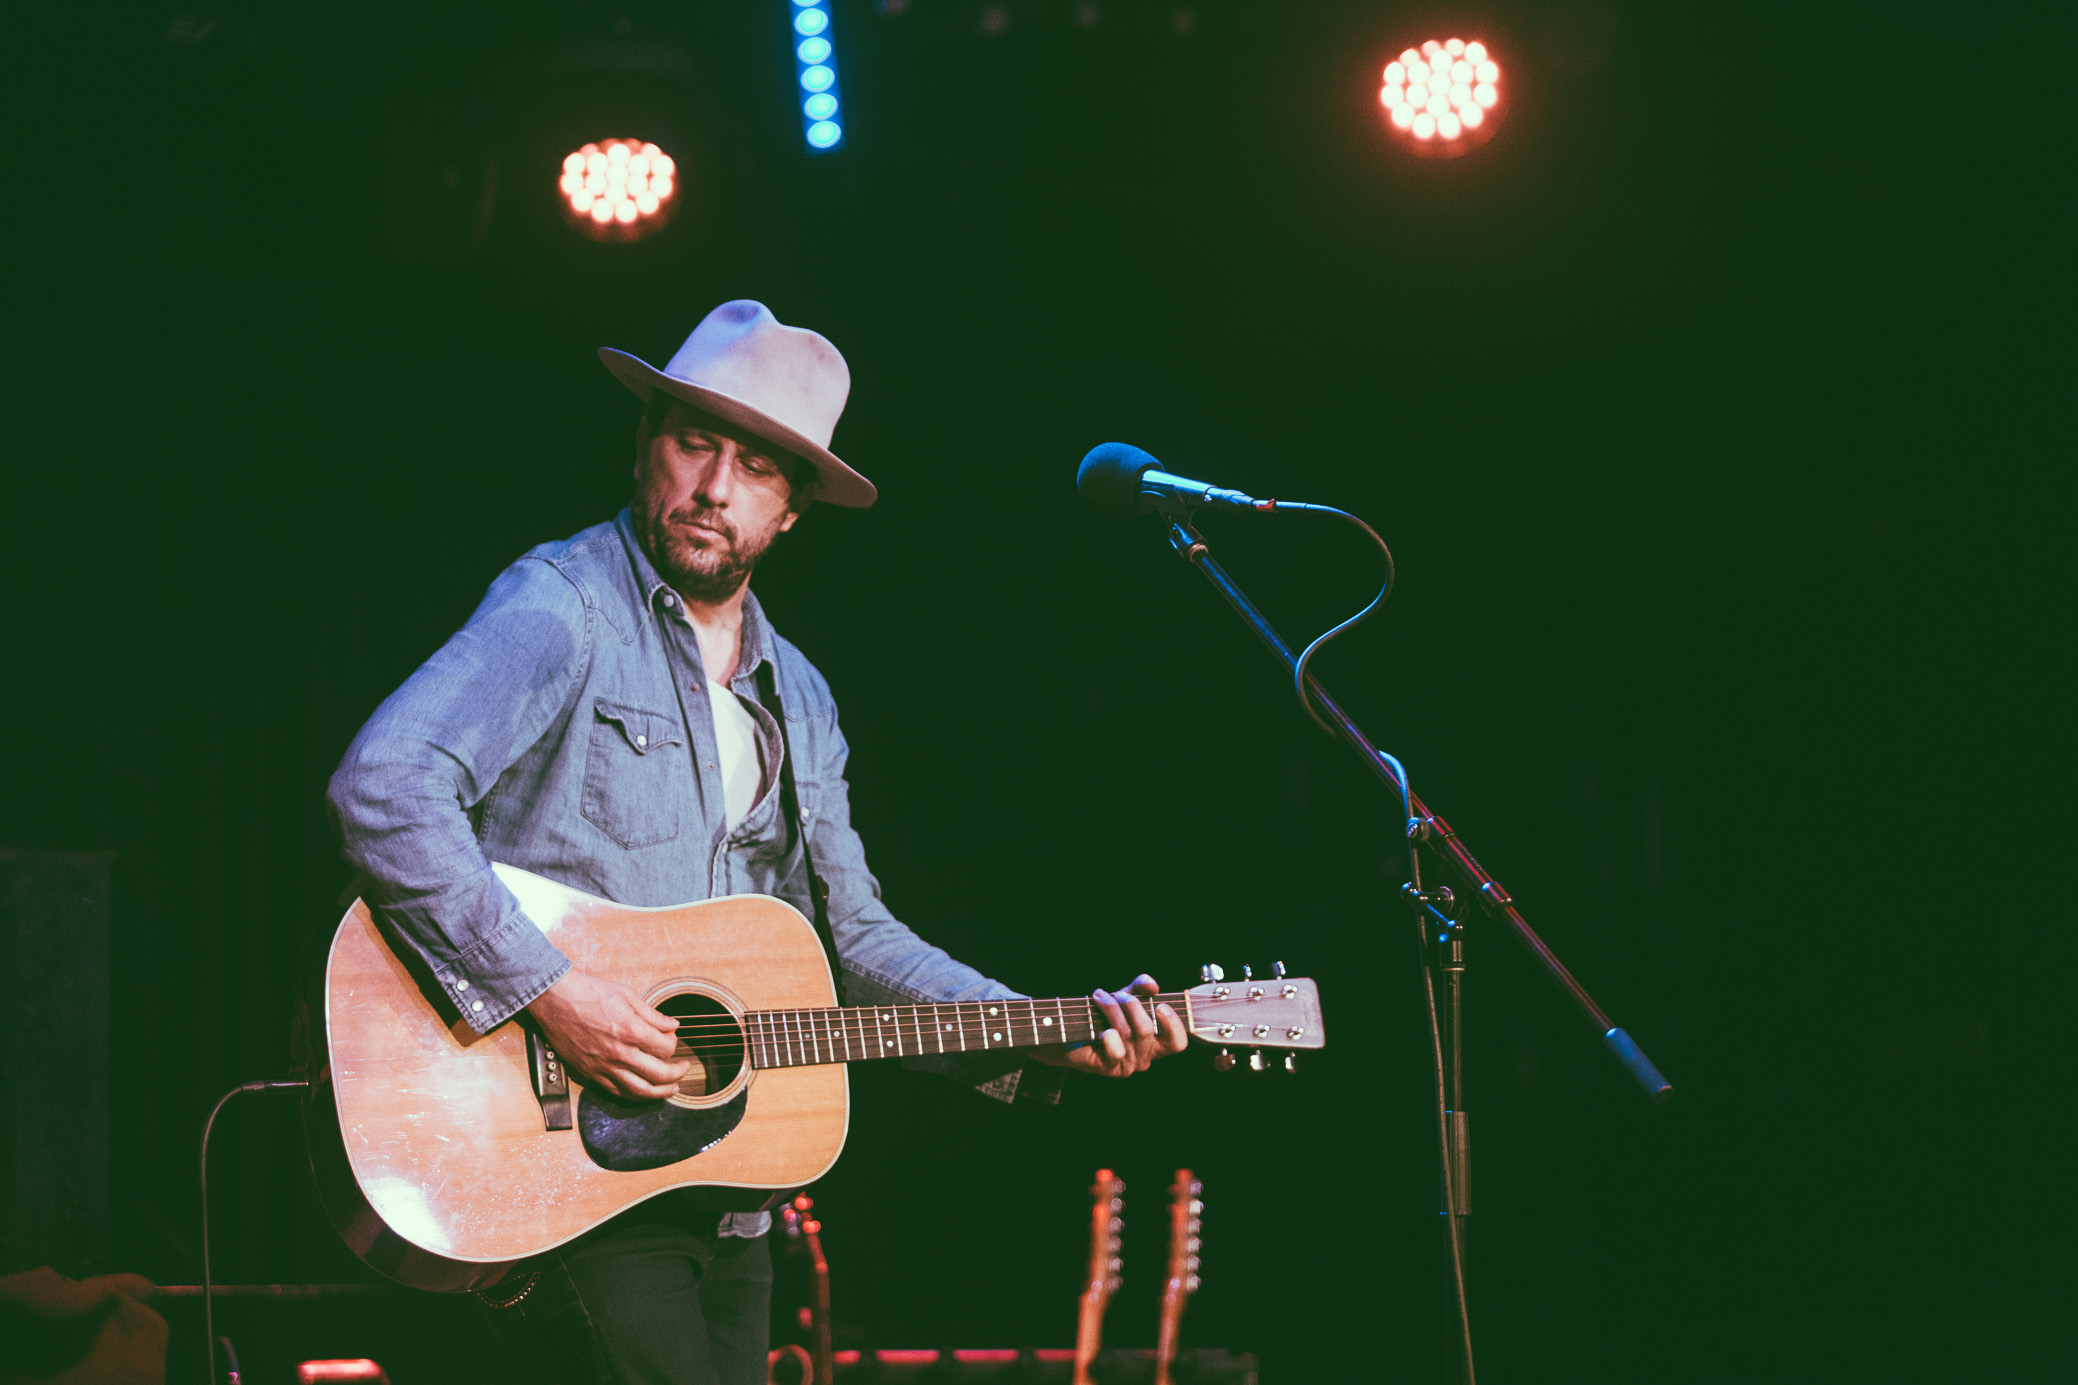 Will Hoge performs in concert at Saturn Birmingham in Birmingham, Alabama on March 29th, 2018. (Photo by David A. Smith/DSmithScenes)